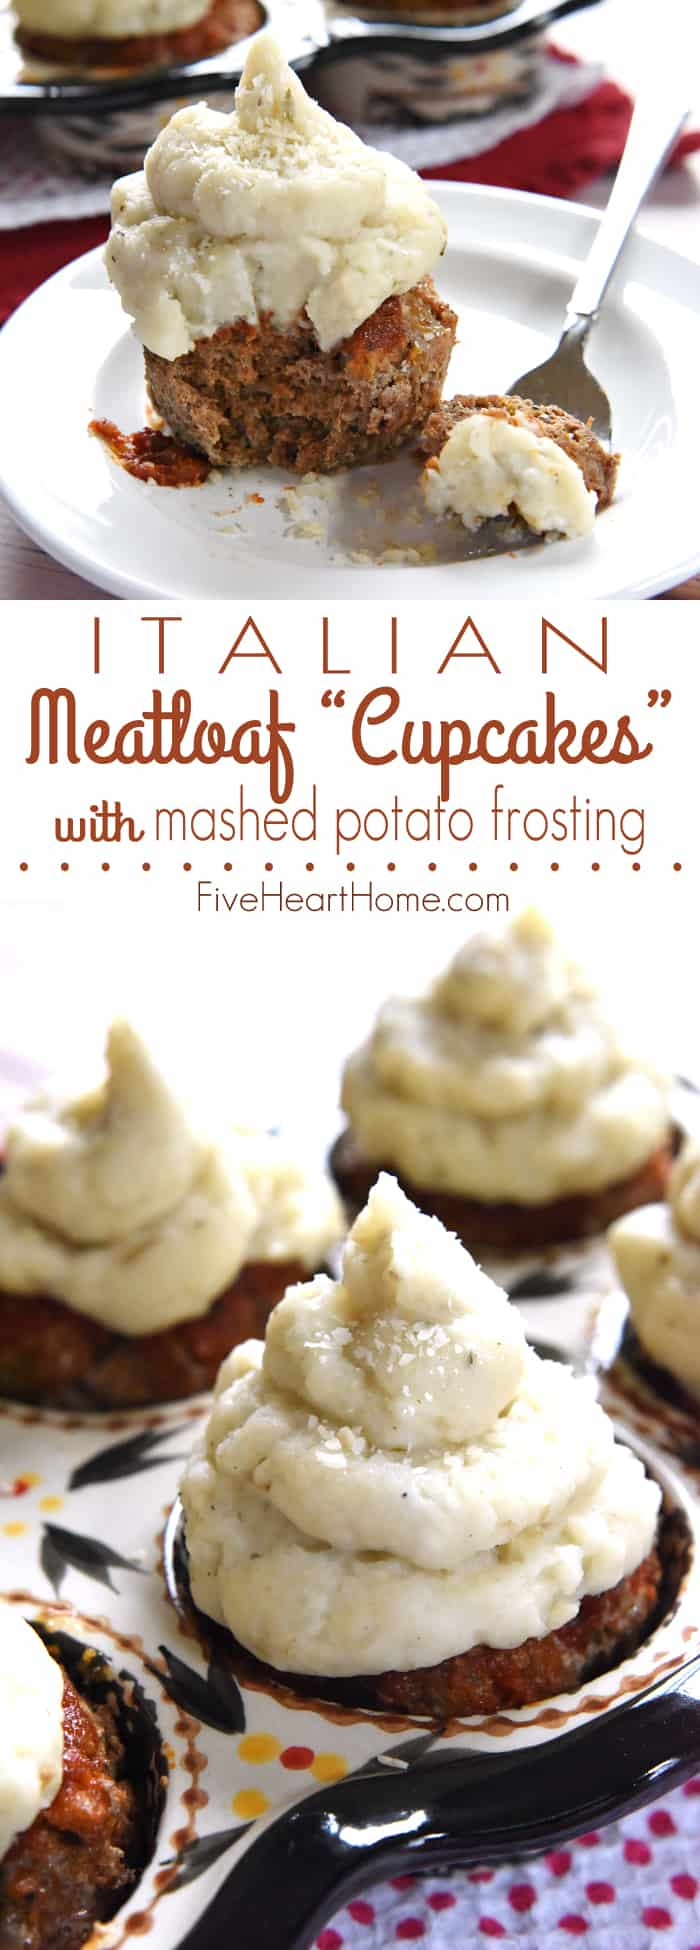 "Italian Meatloaf ""Cupcakes"" with Mashed Potato Frosting Collage with Text Overlay"